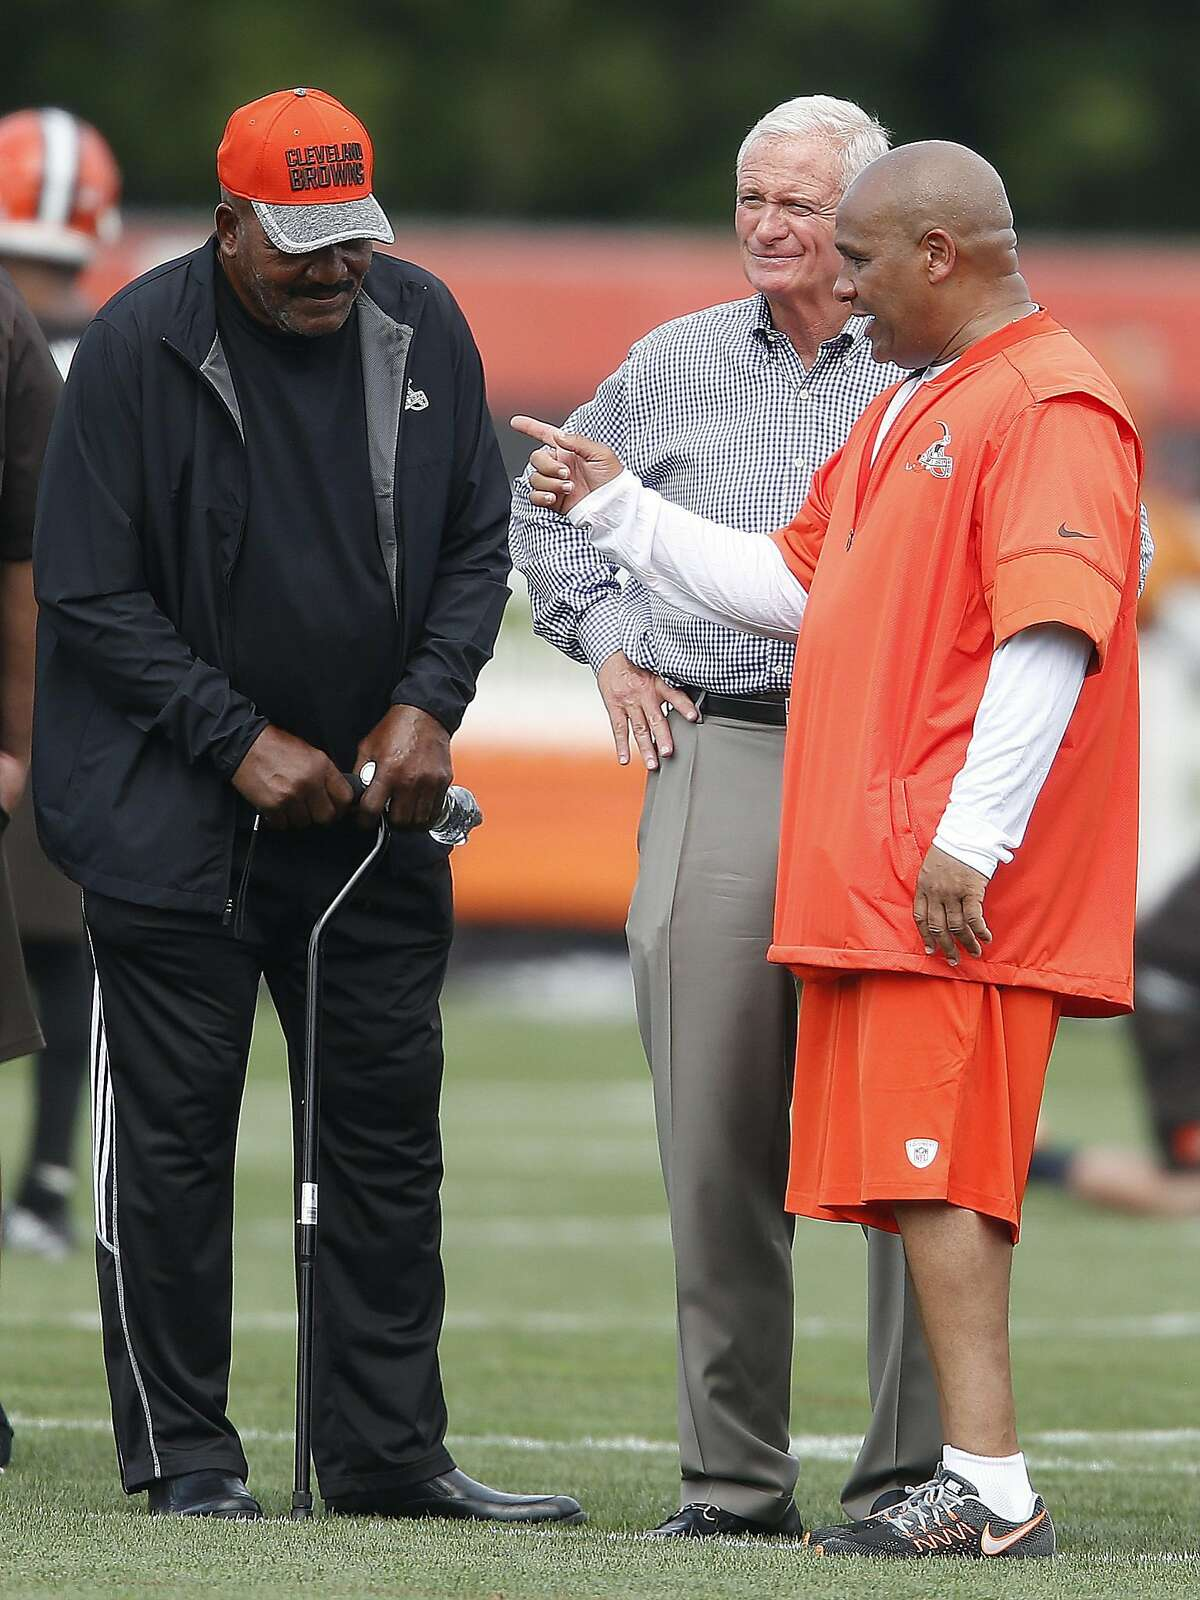 Cleveland Browns head coach Hue Jackson, right, talks with owner Jimmy Haslam and Jim Brown, left, during practice at the NFL football team's training camp Friday, July 29, 2016, in Berea, Ohio. (AP Photo/Ron Schwane)